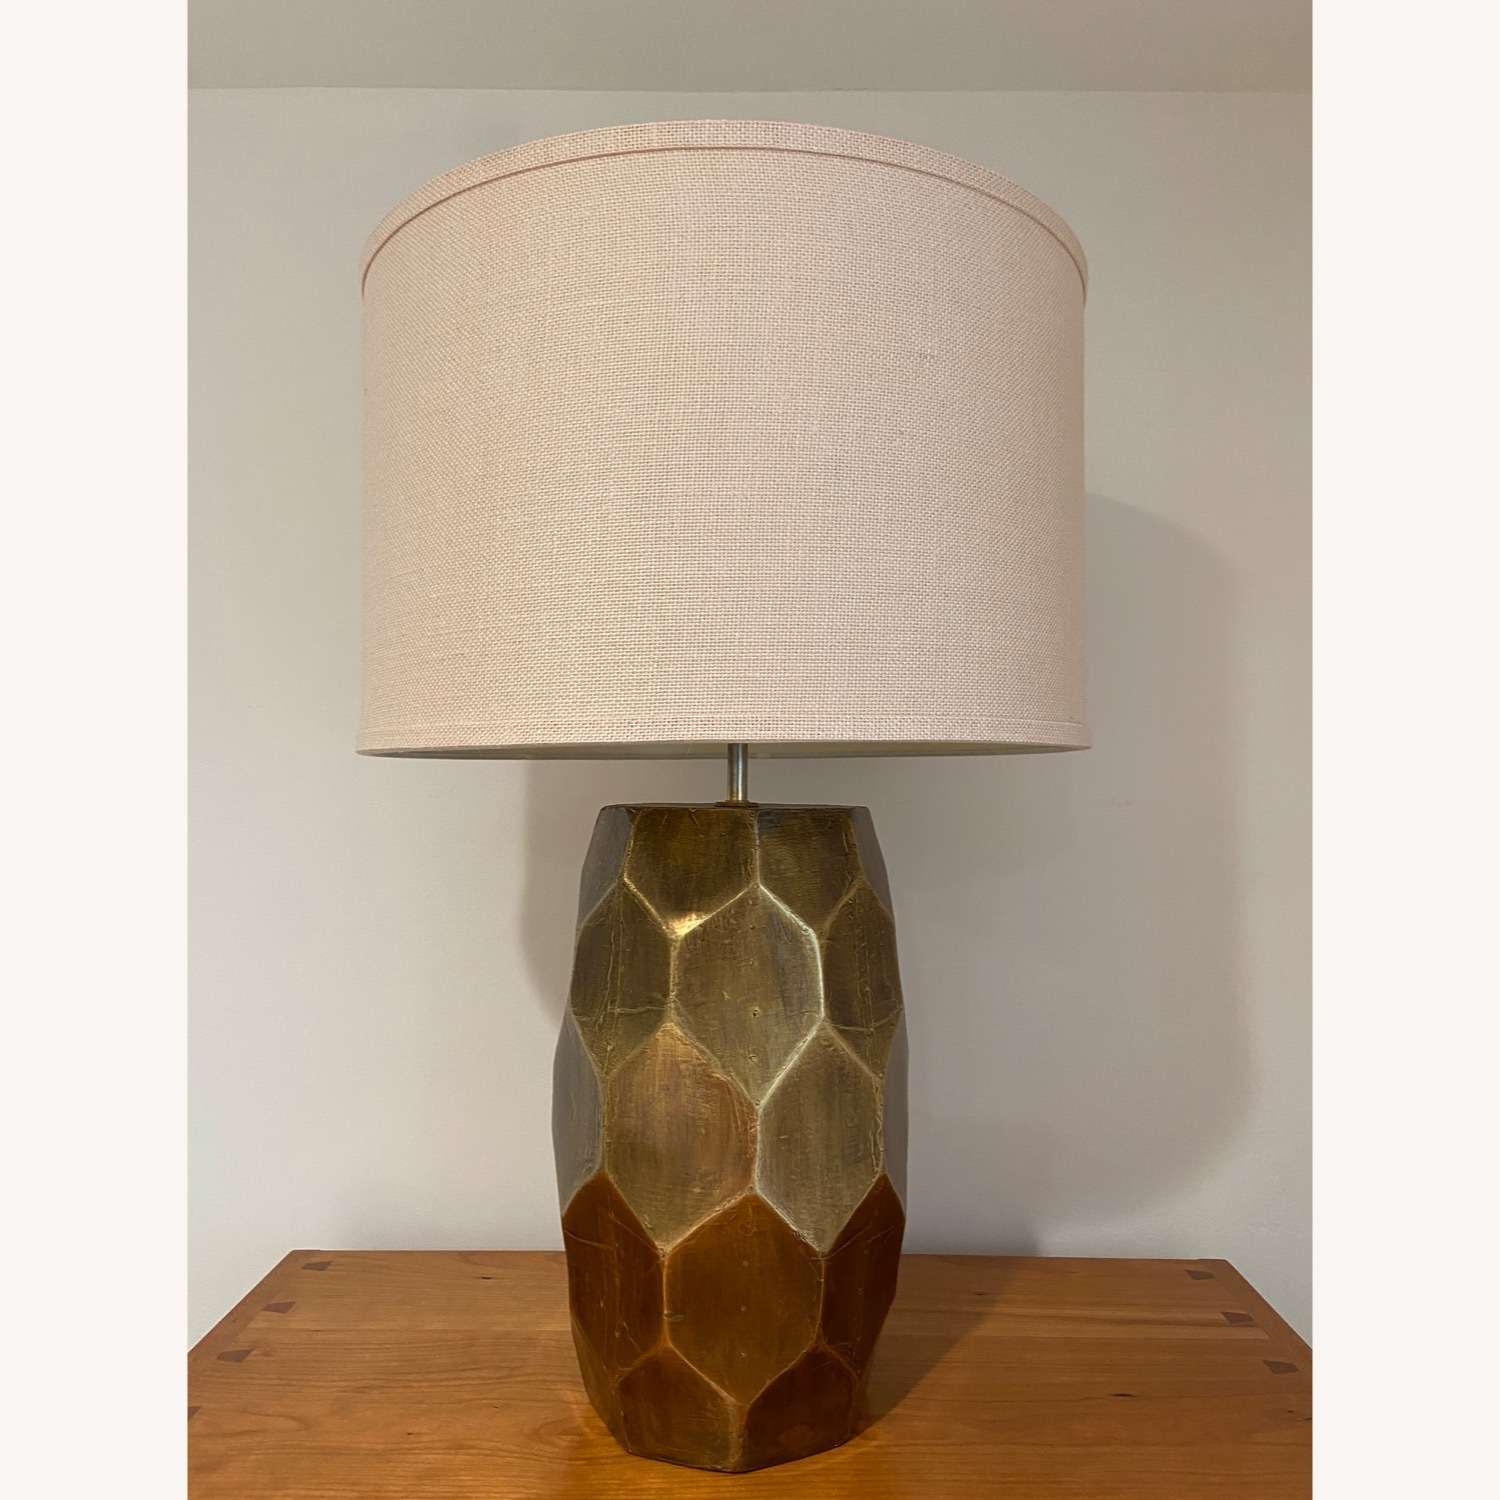 Pottery Barn Hammered Golden Honeycomb Lamps (2) - image-1